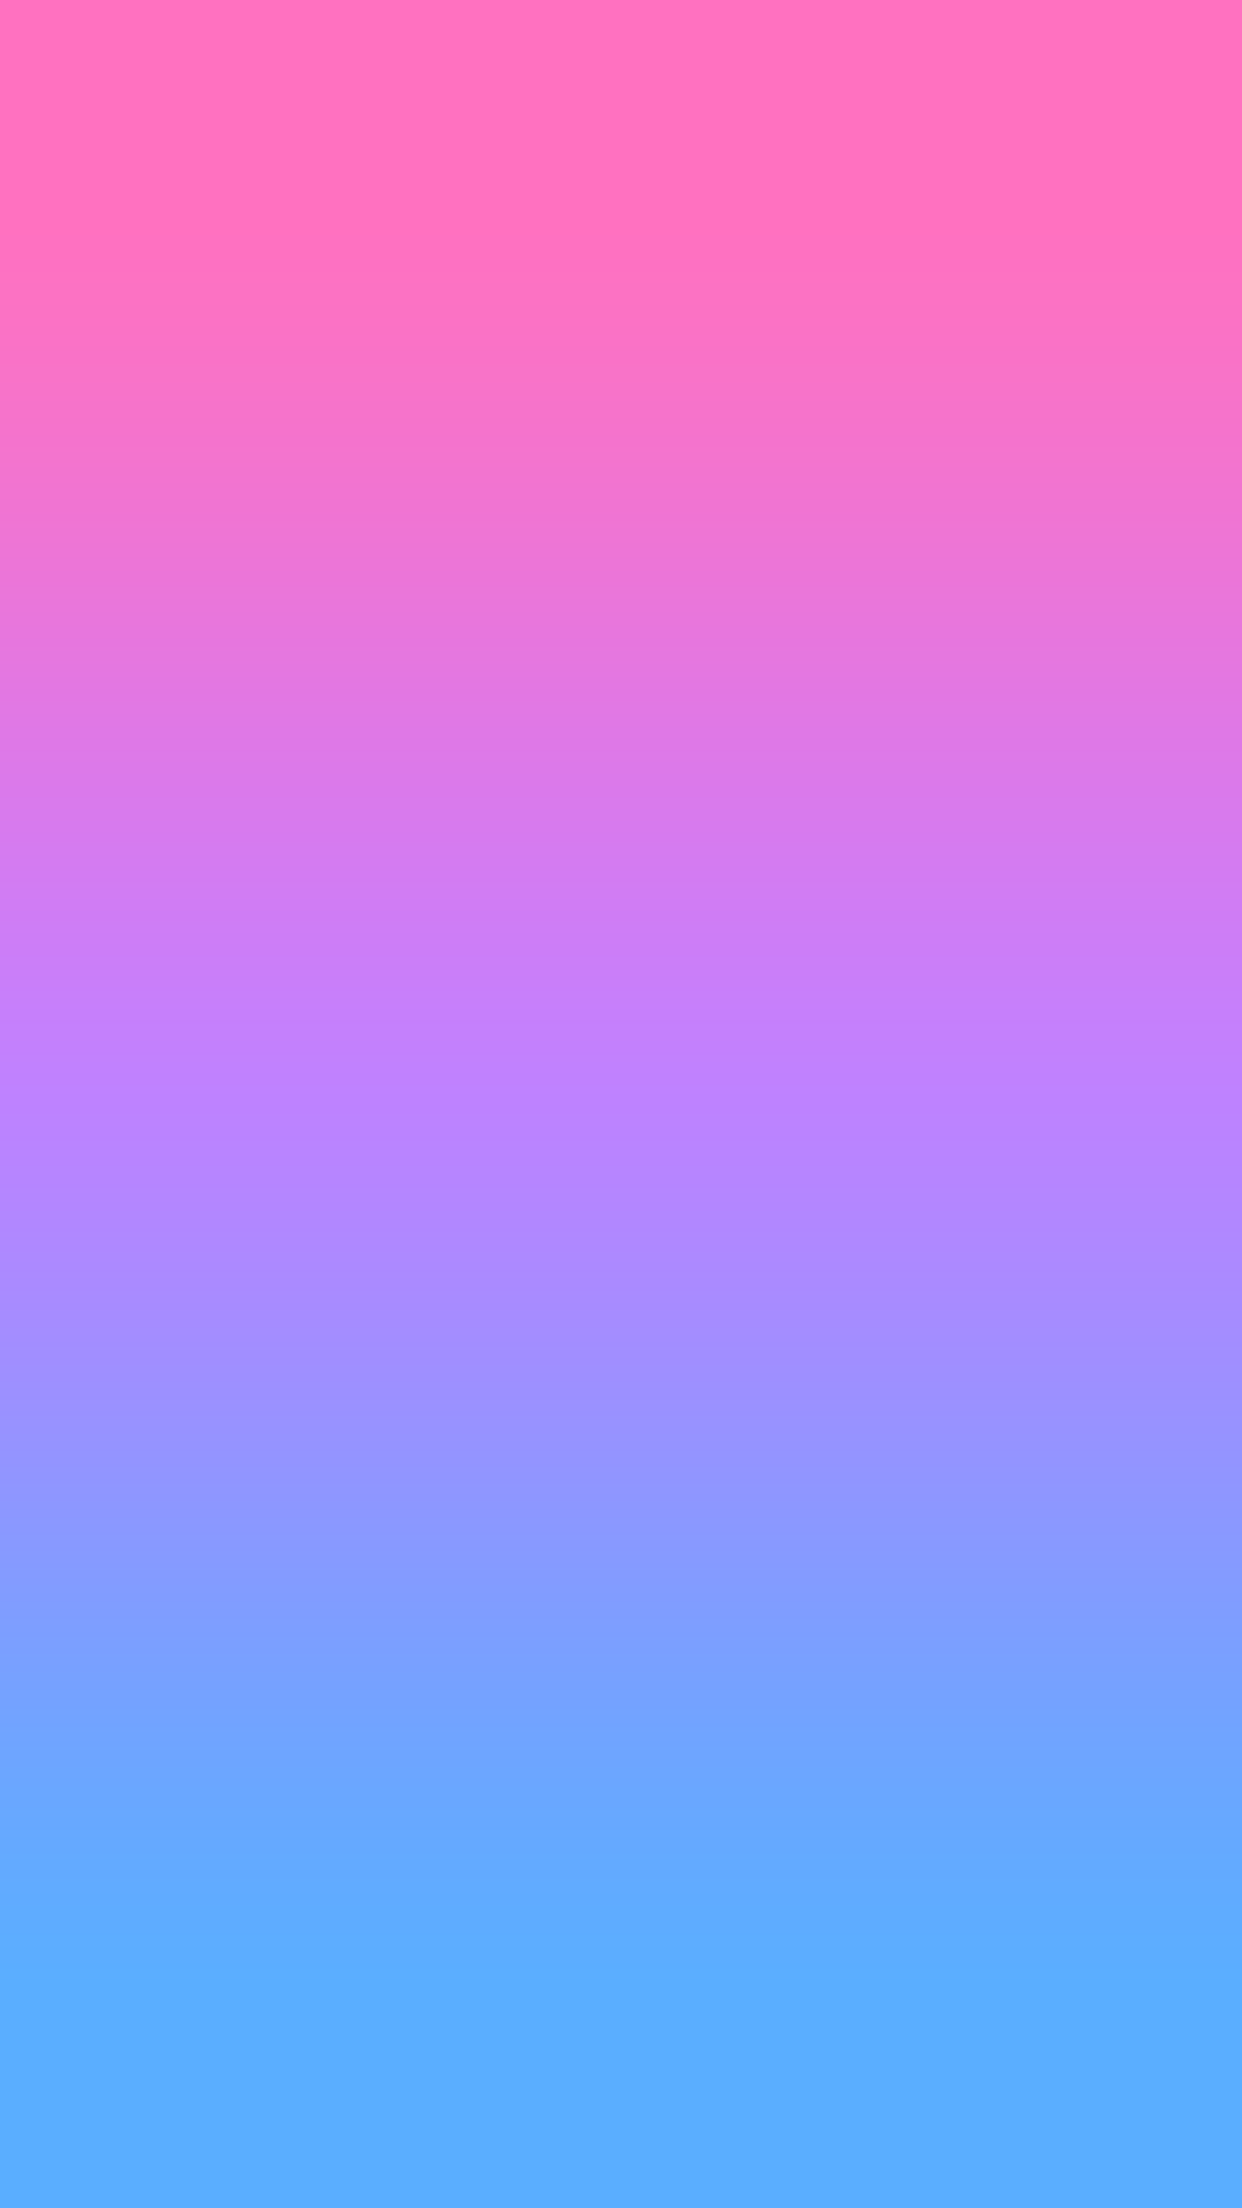 Pink And Blue PNG - 171084